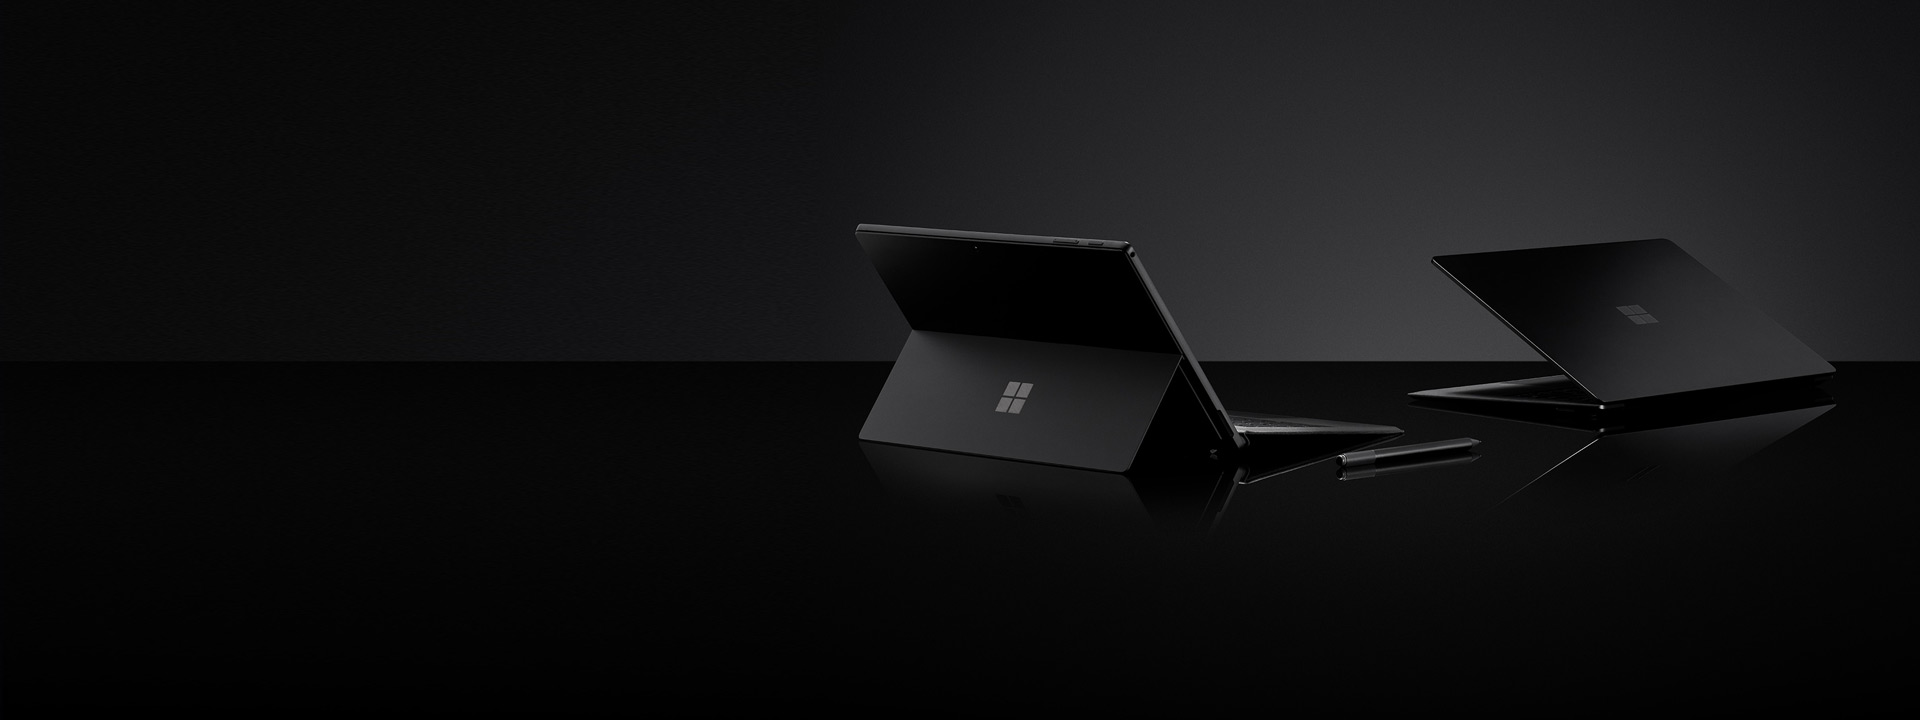 黑色 Surface Laptop 2, 黑色 Surface Pro 6, 黑色 Surface Pen